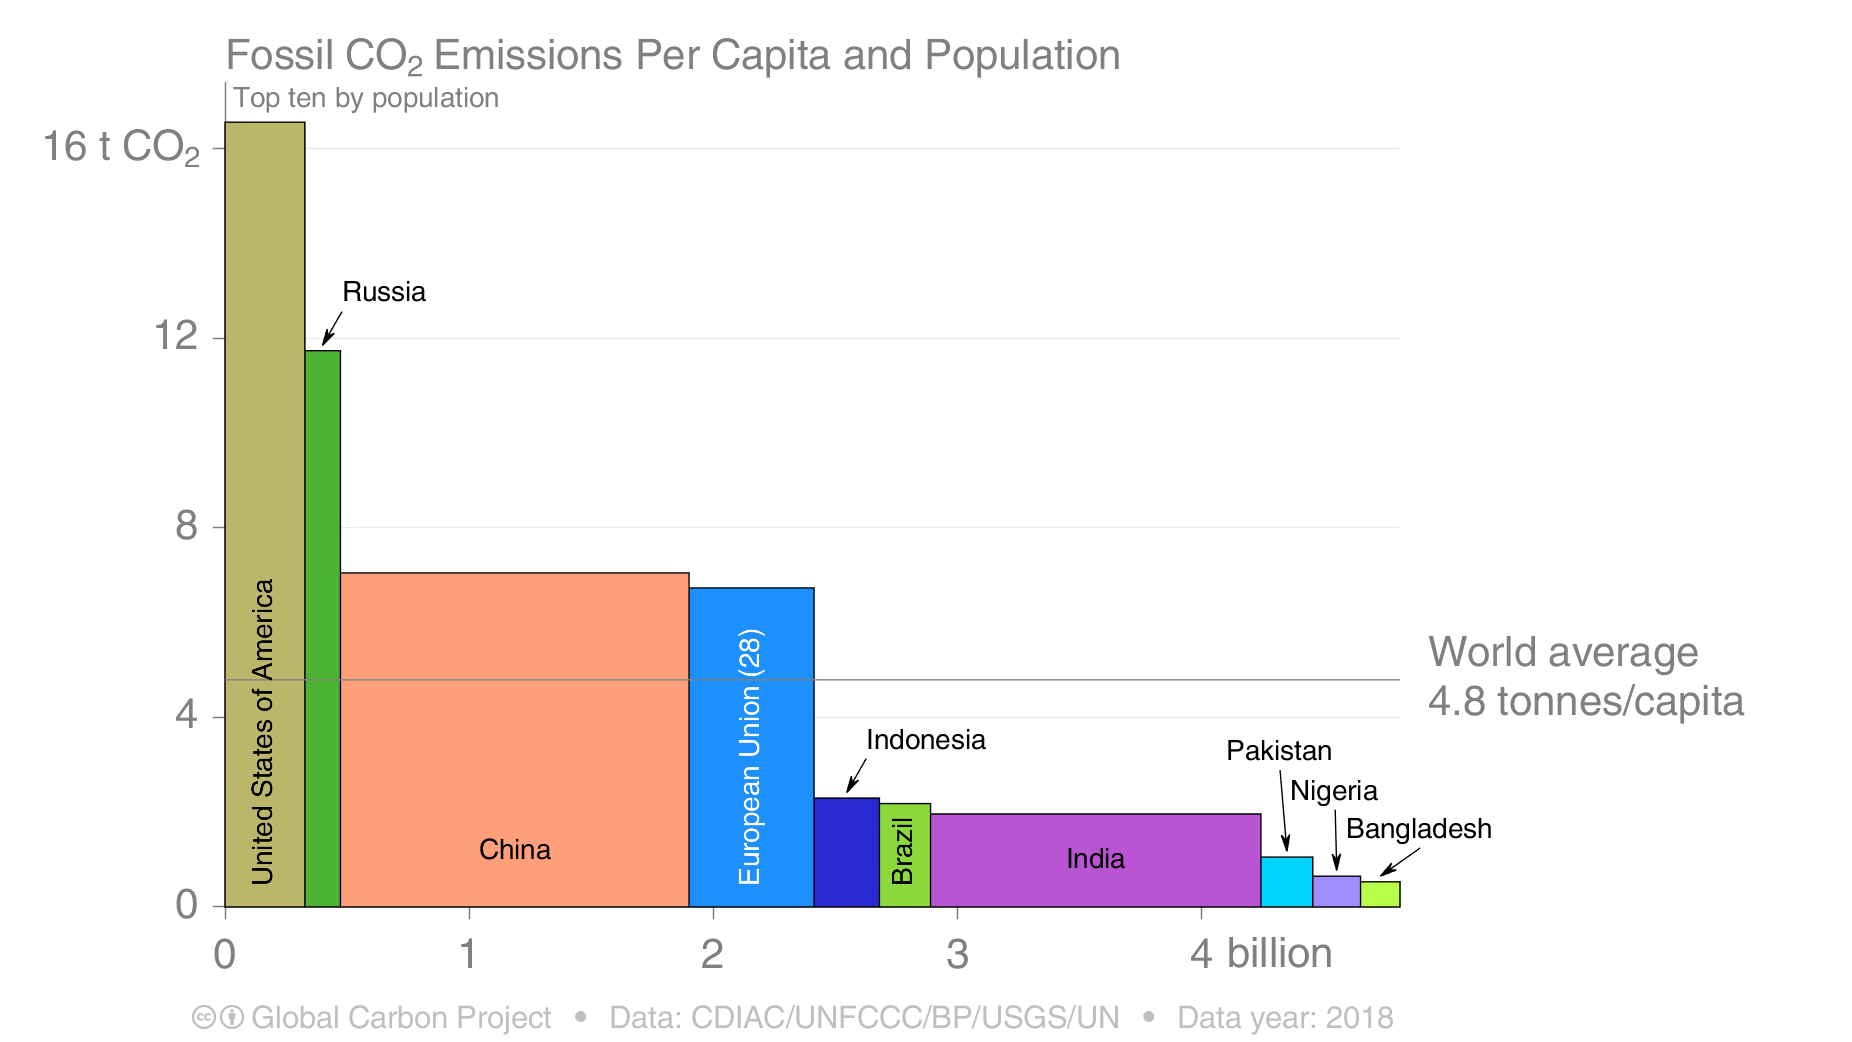 Vertical axis shows emissions per person, while the horizontal axis shows population for that country or group of countries.